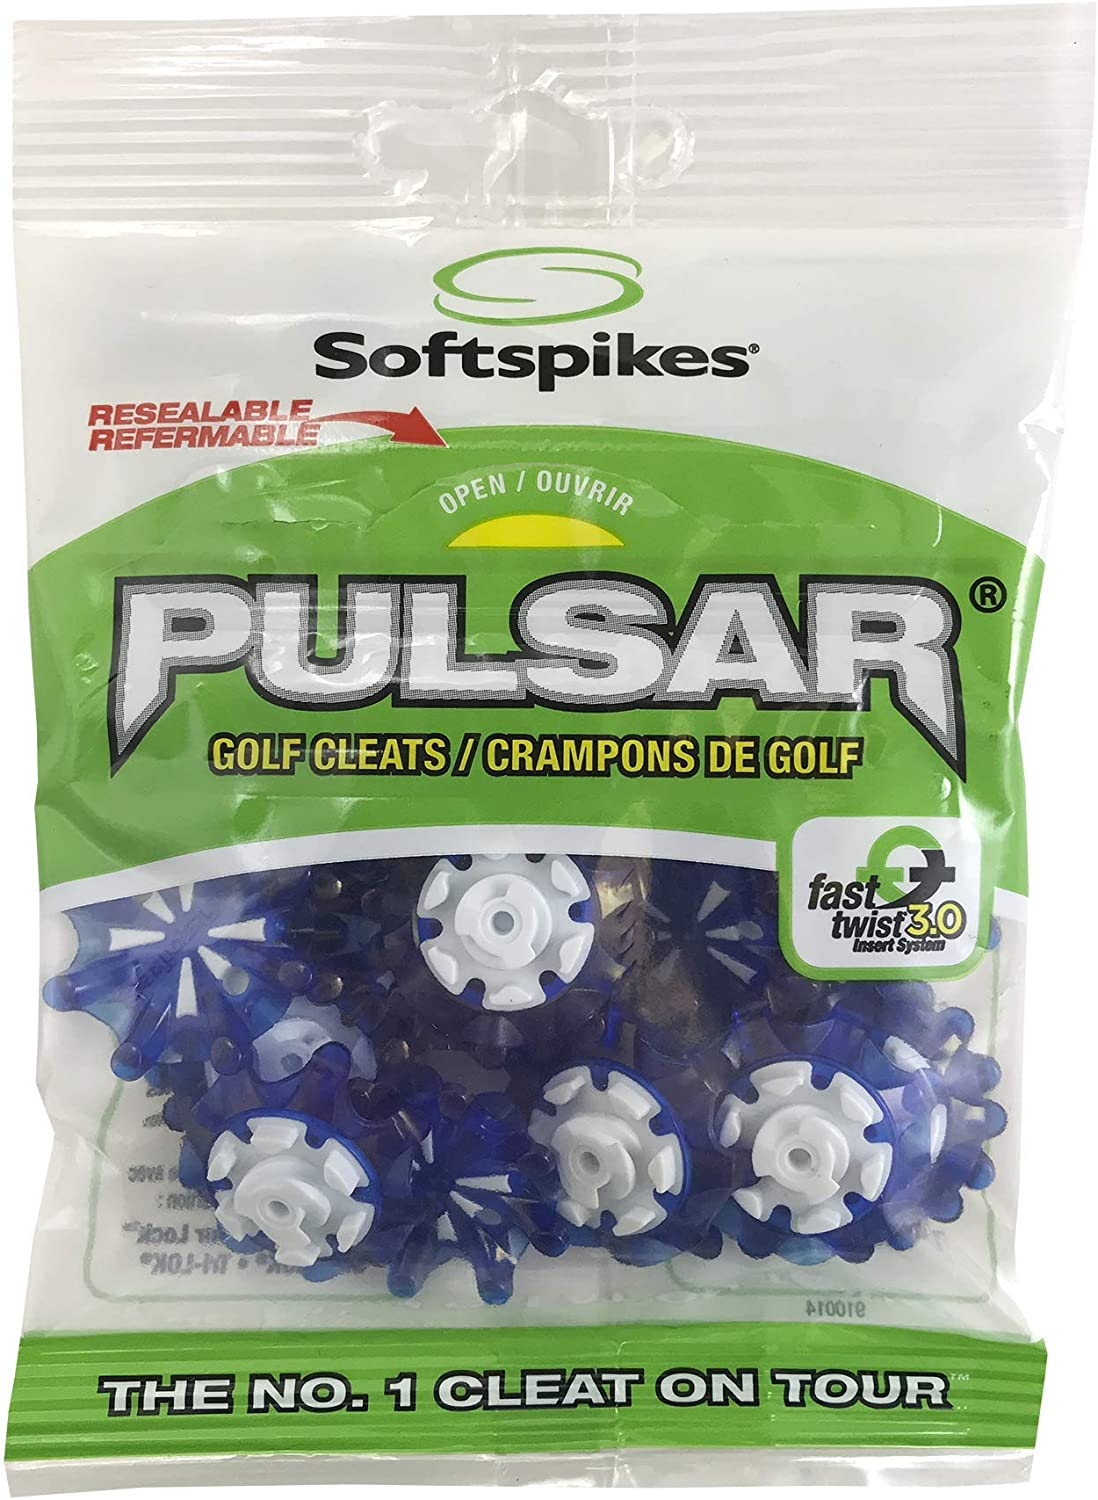 SOFTSPIKES Pulsar Fast Twist 3.0 Cleats 16 Max 61% OFF Count Max 49% OFF Golf